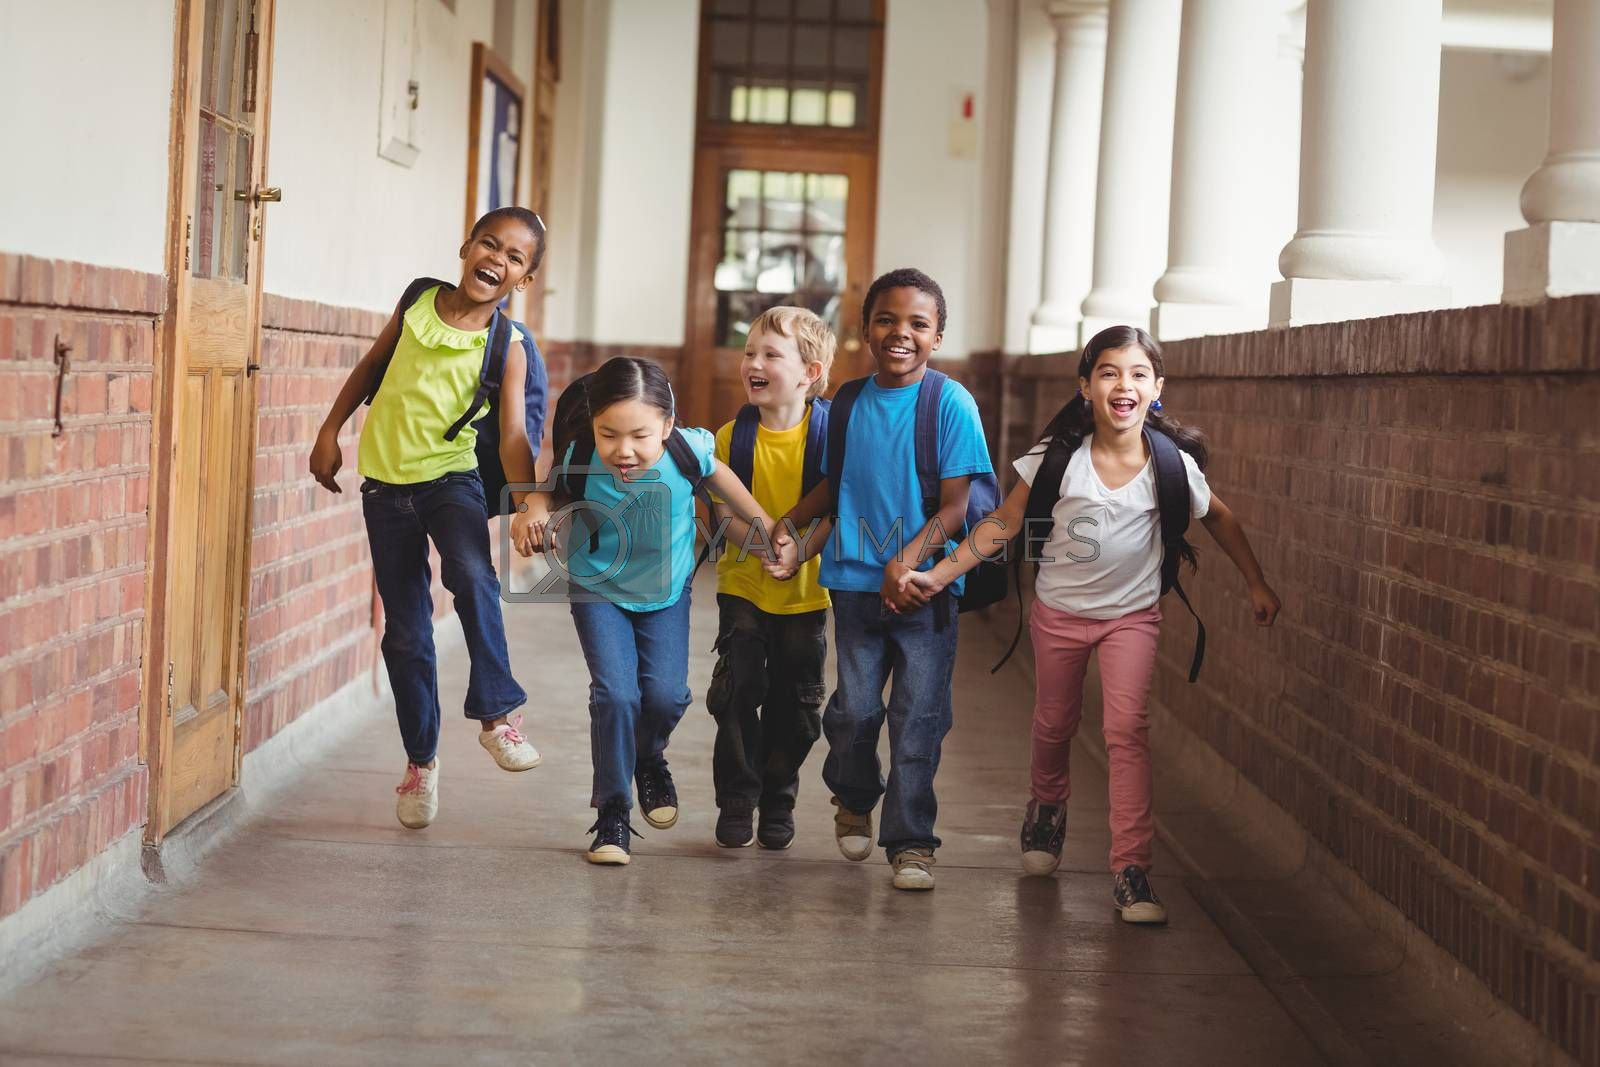 Happy pupils holding hands and running at corridor in school